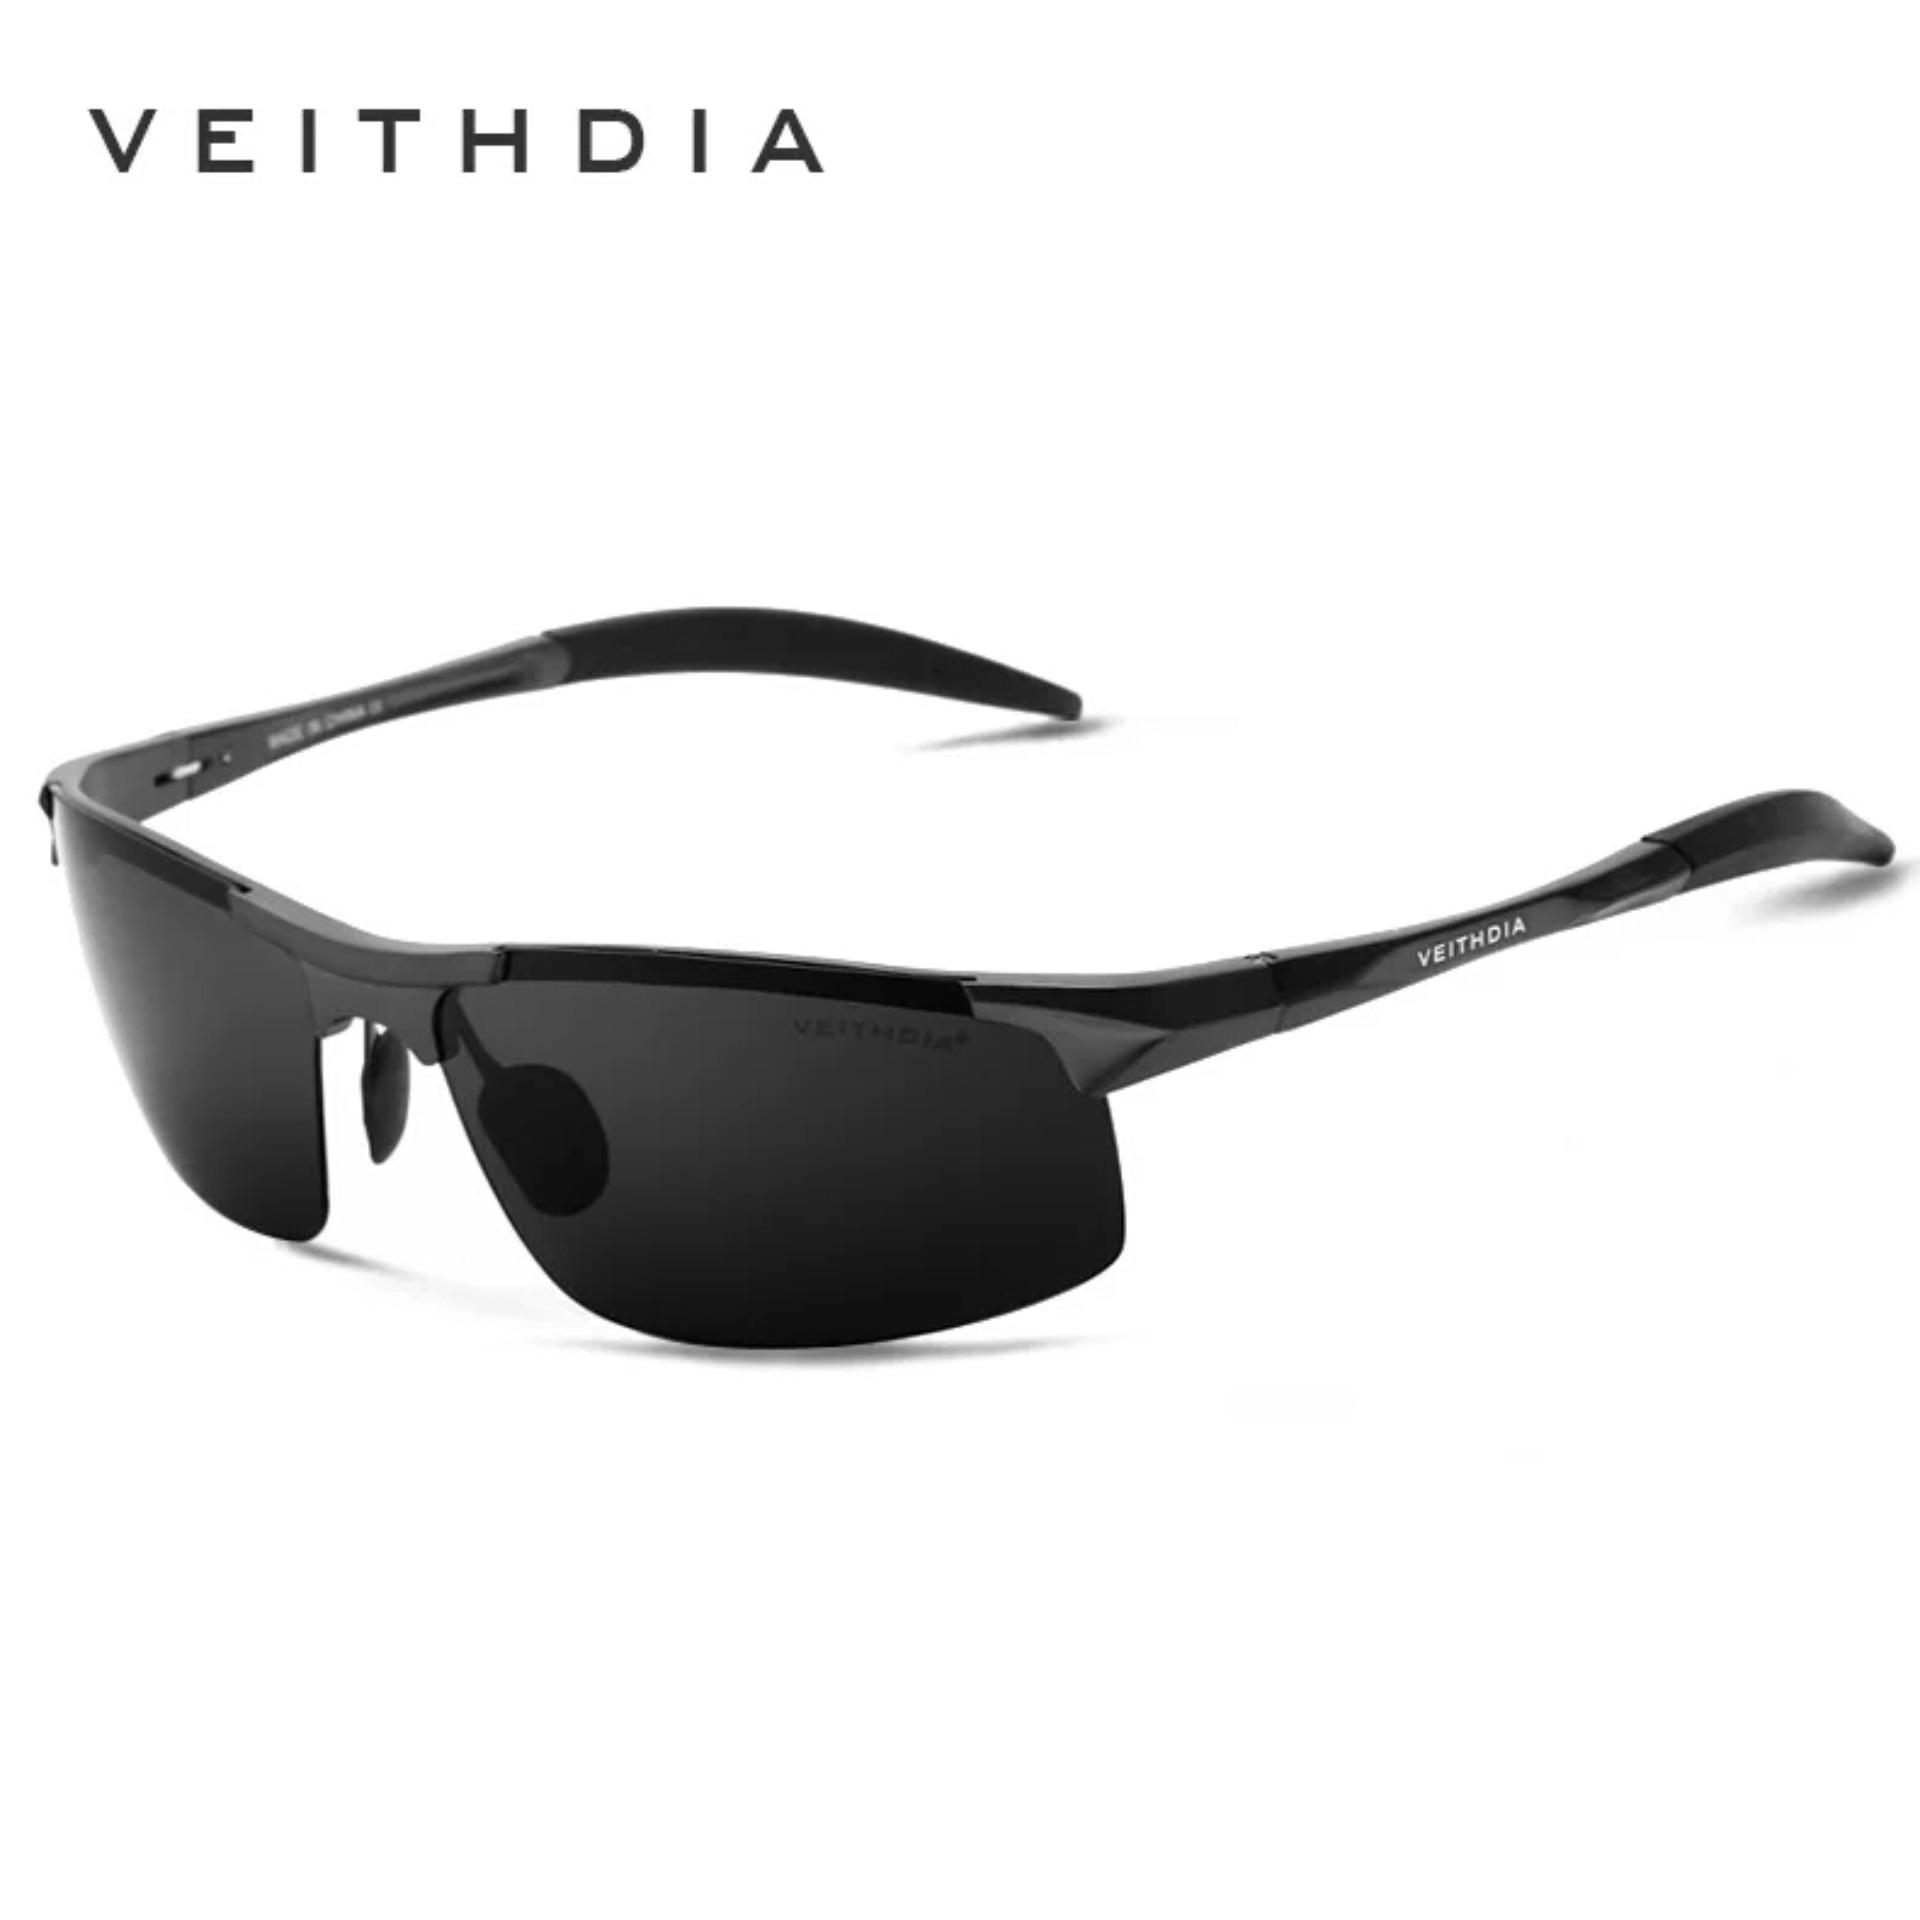 824953129be Aluminum Magnesium Mens Sunglasses Polarized Sun Glasses Uv400 - Black